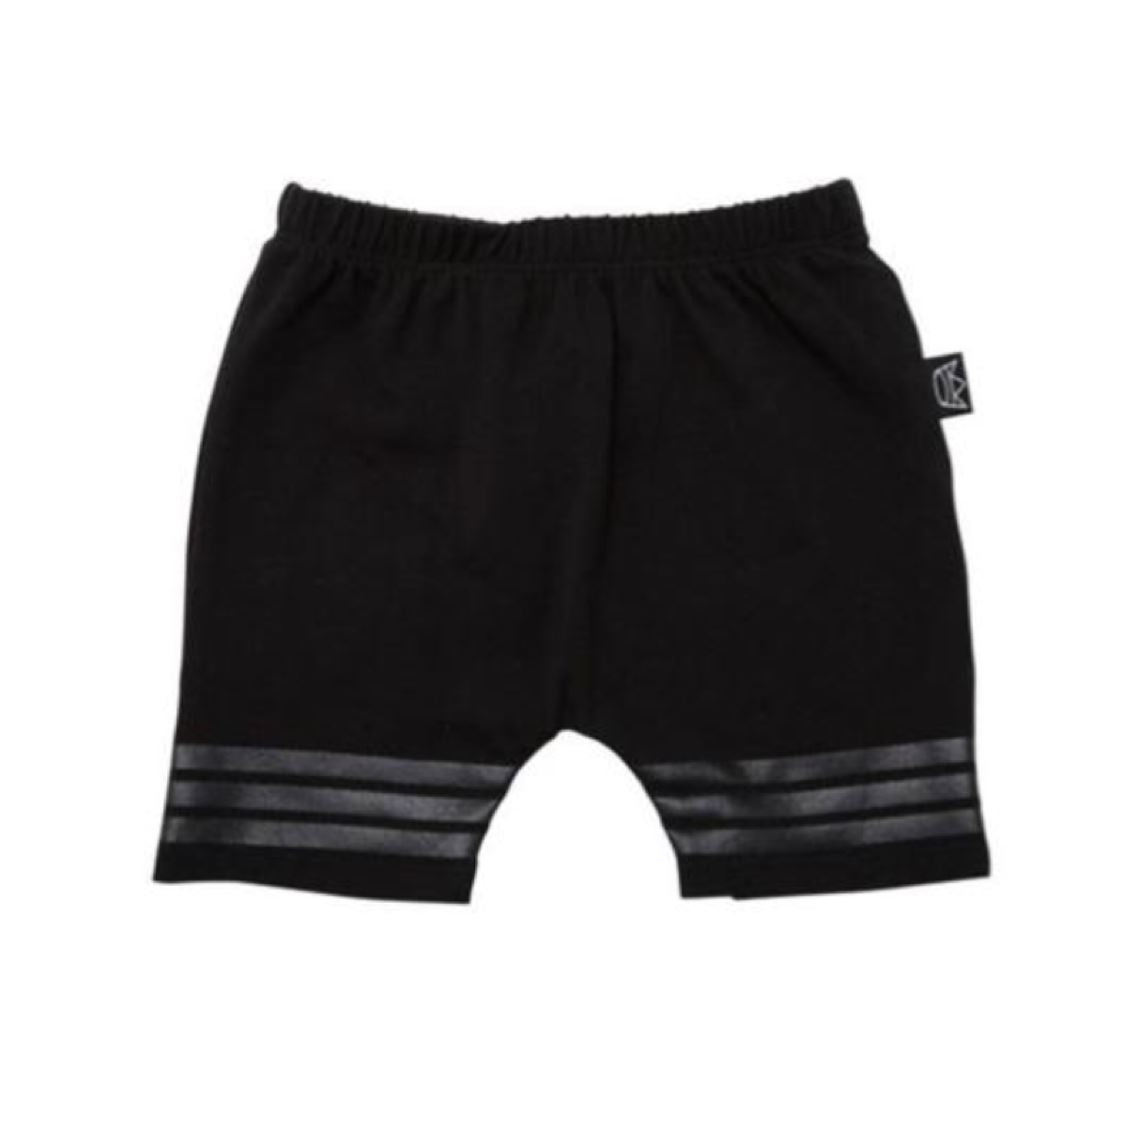 Kipp Kids - Black on Black Three Stripe Shorts (Newborn) Shorts Kipp Kids